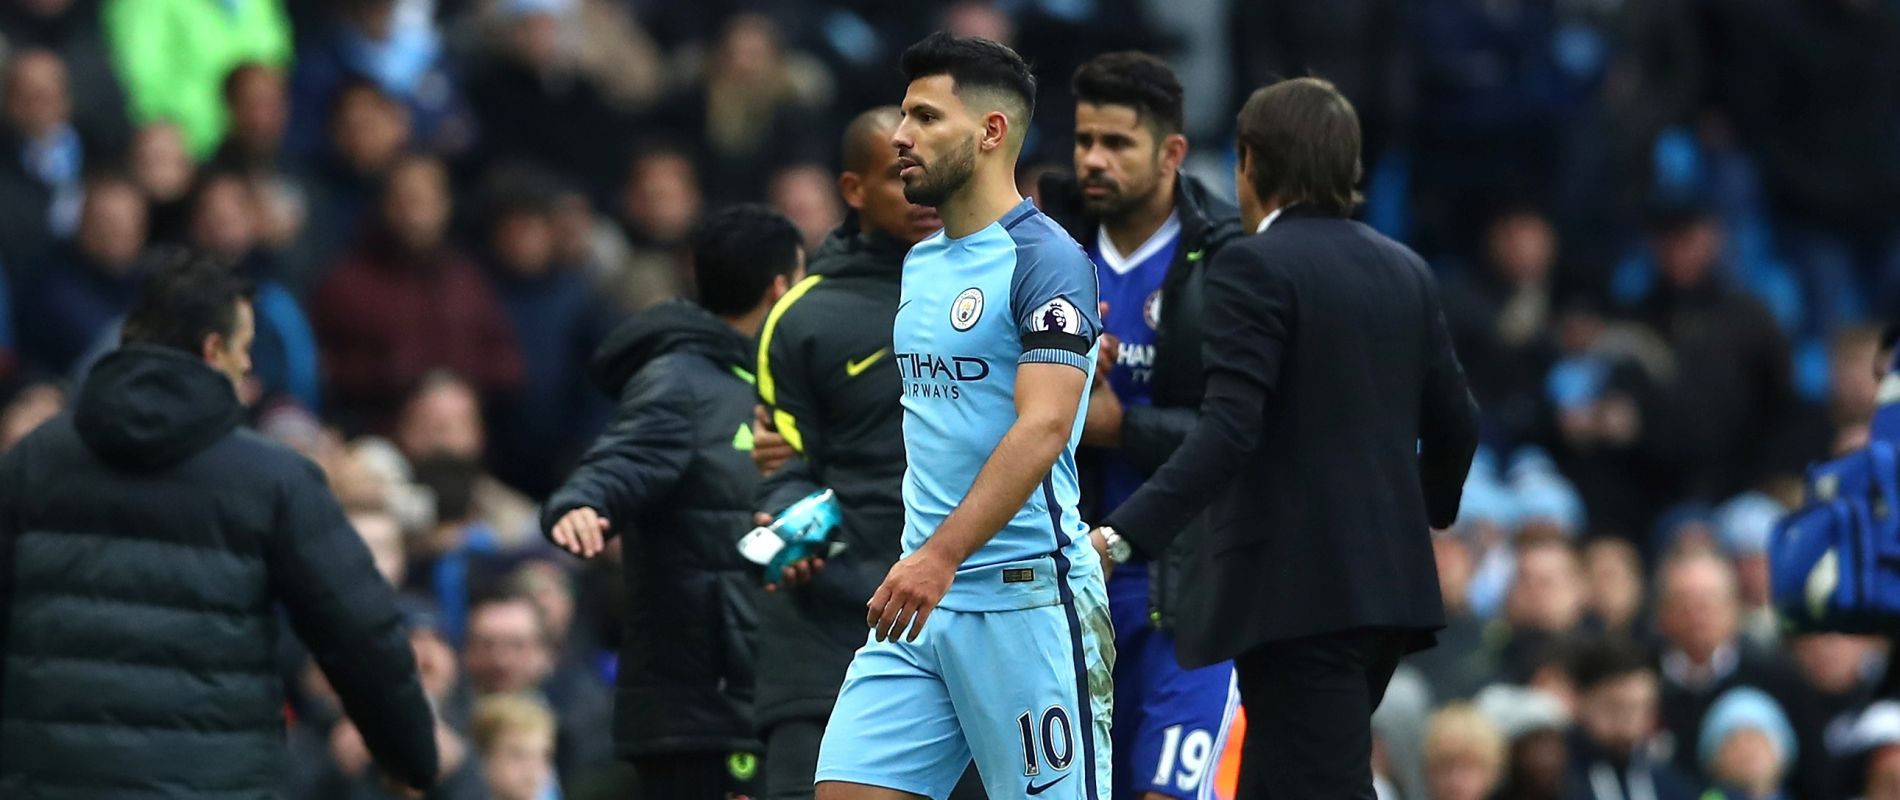 'Altrincham fan' screws City - Anthony Taylor sent off Sergio Aguero against Chelsea.